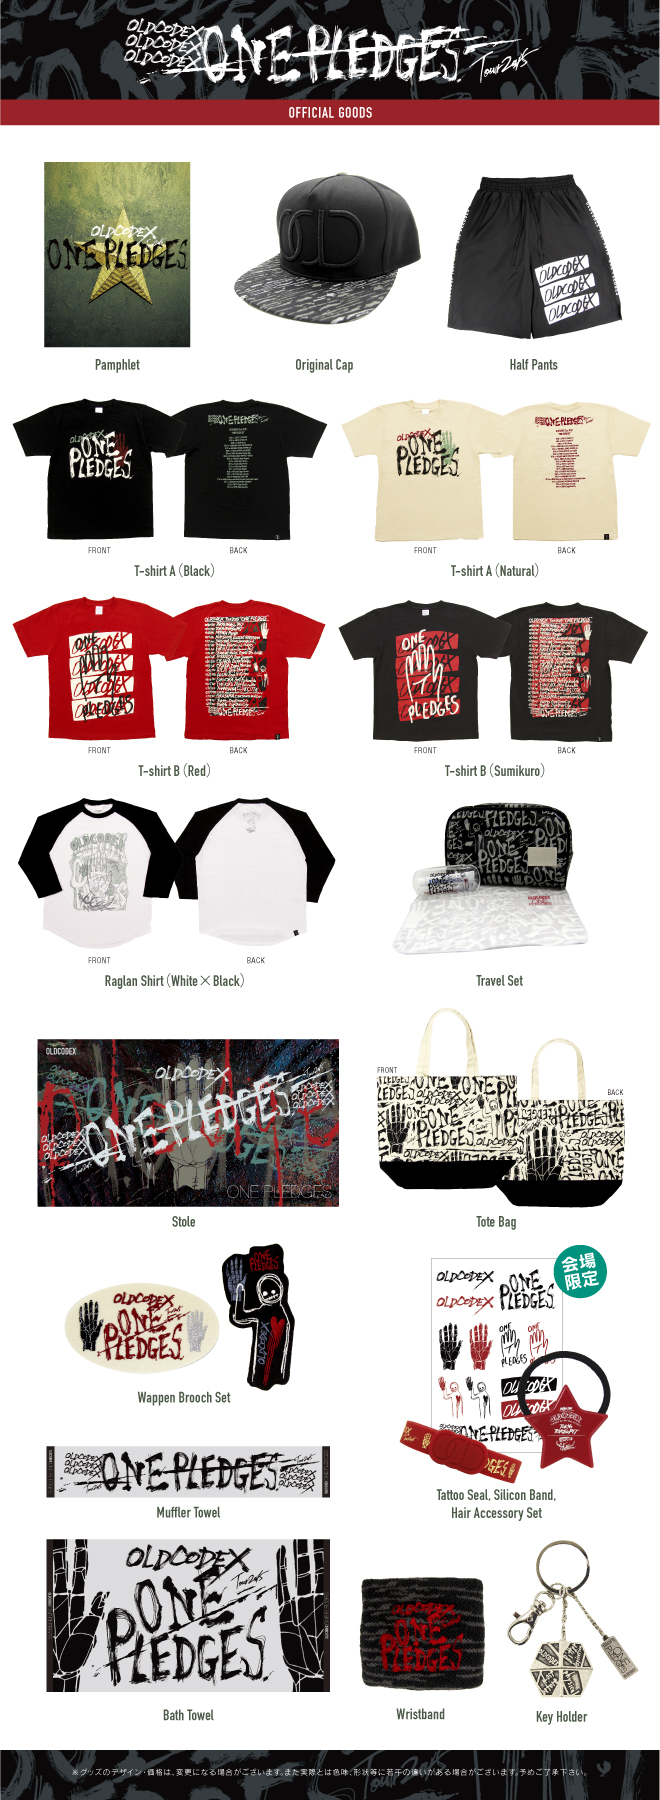 "OLDCODEX Tour 2015 ""ONE PLEDGES"" OFFICIAL GOODS"